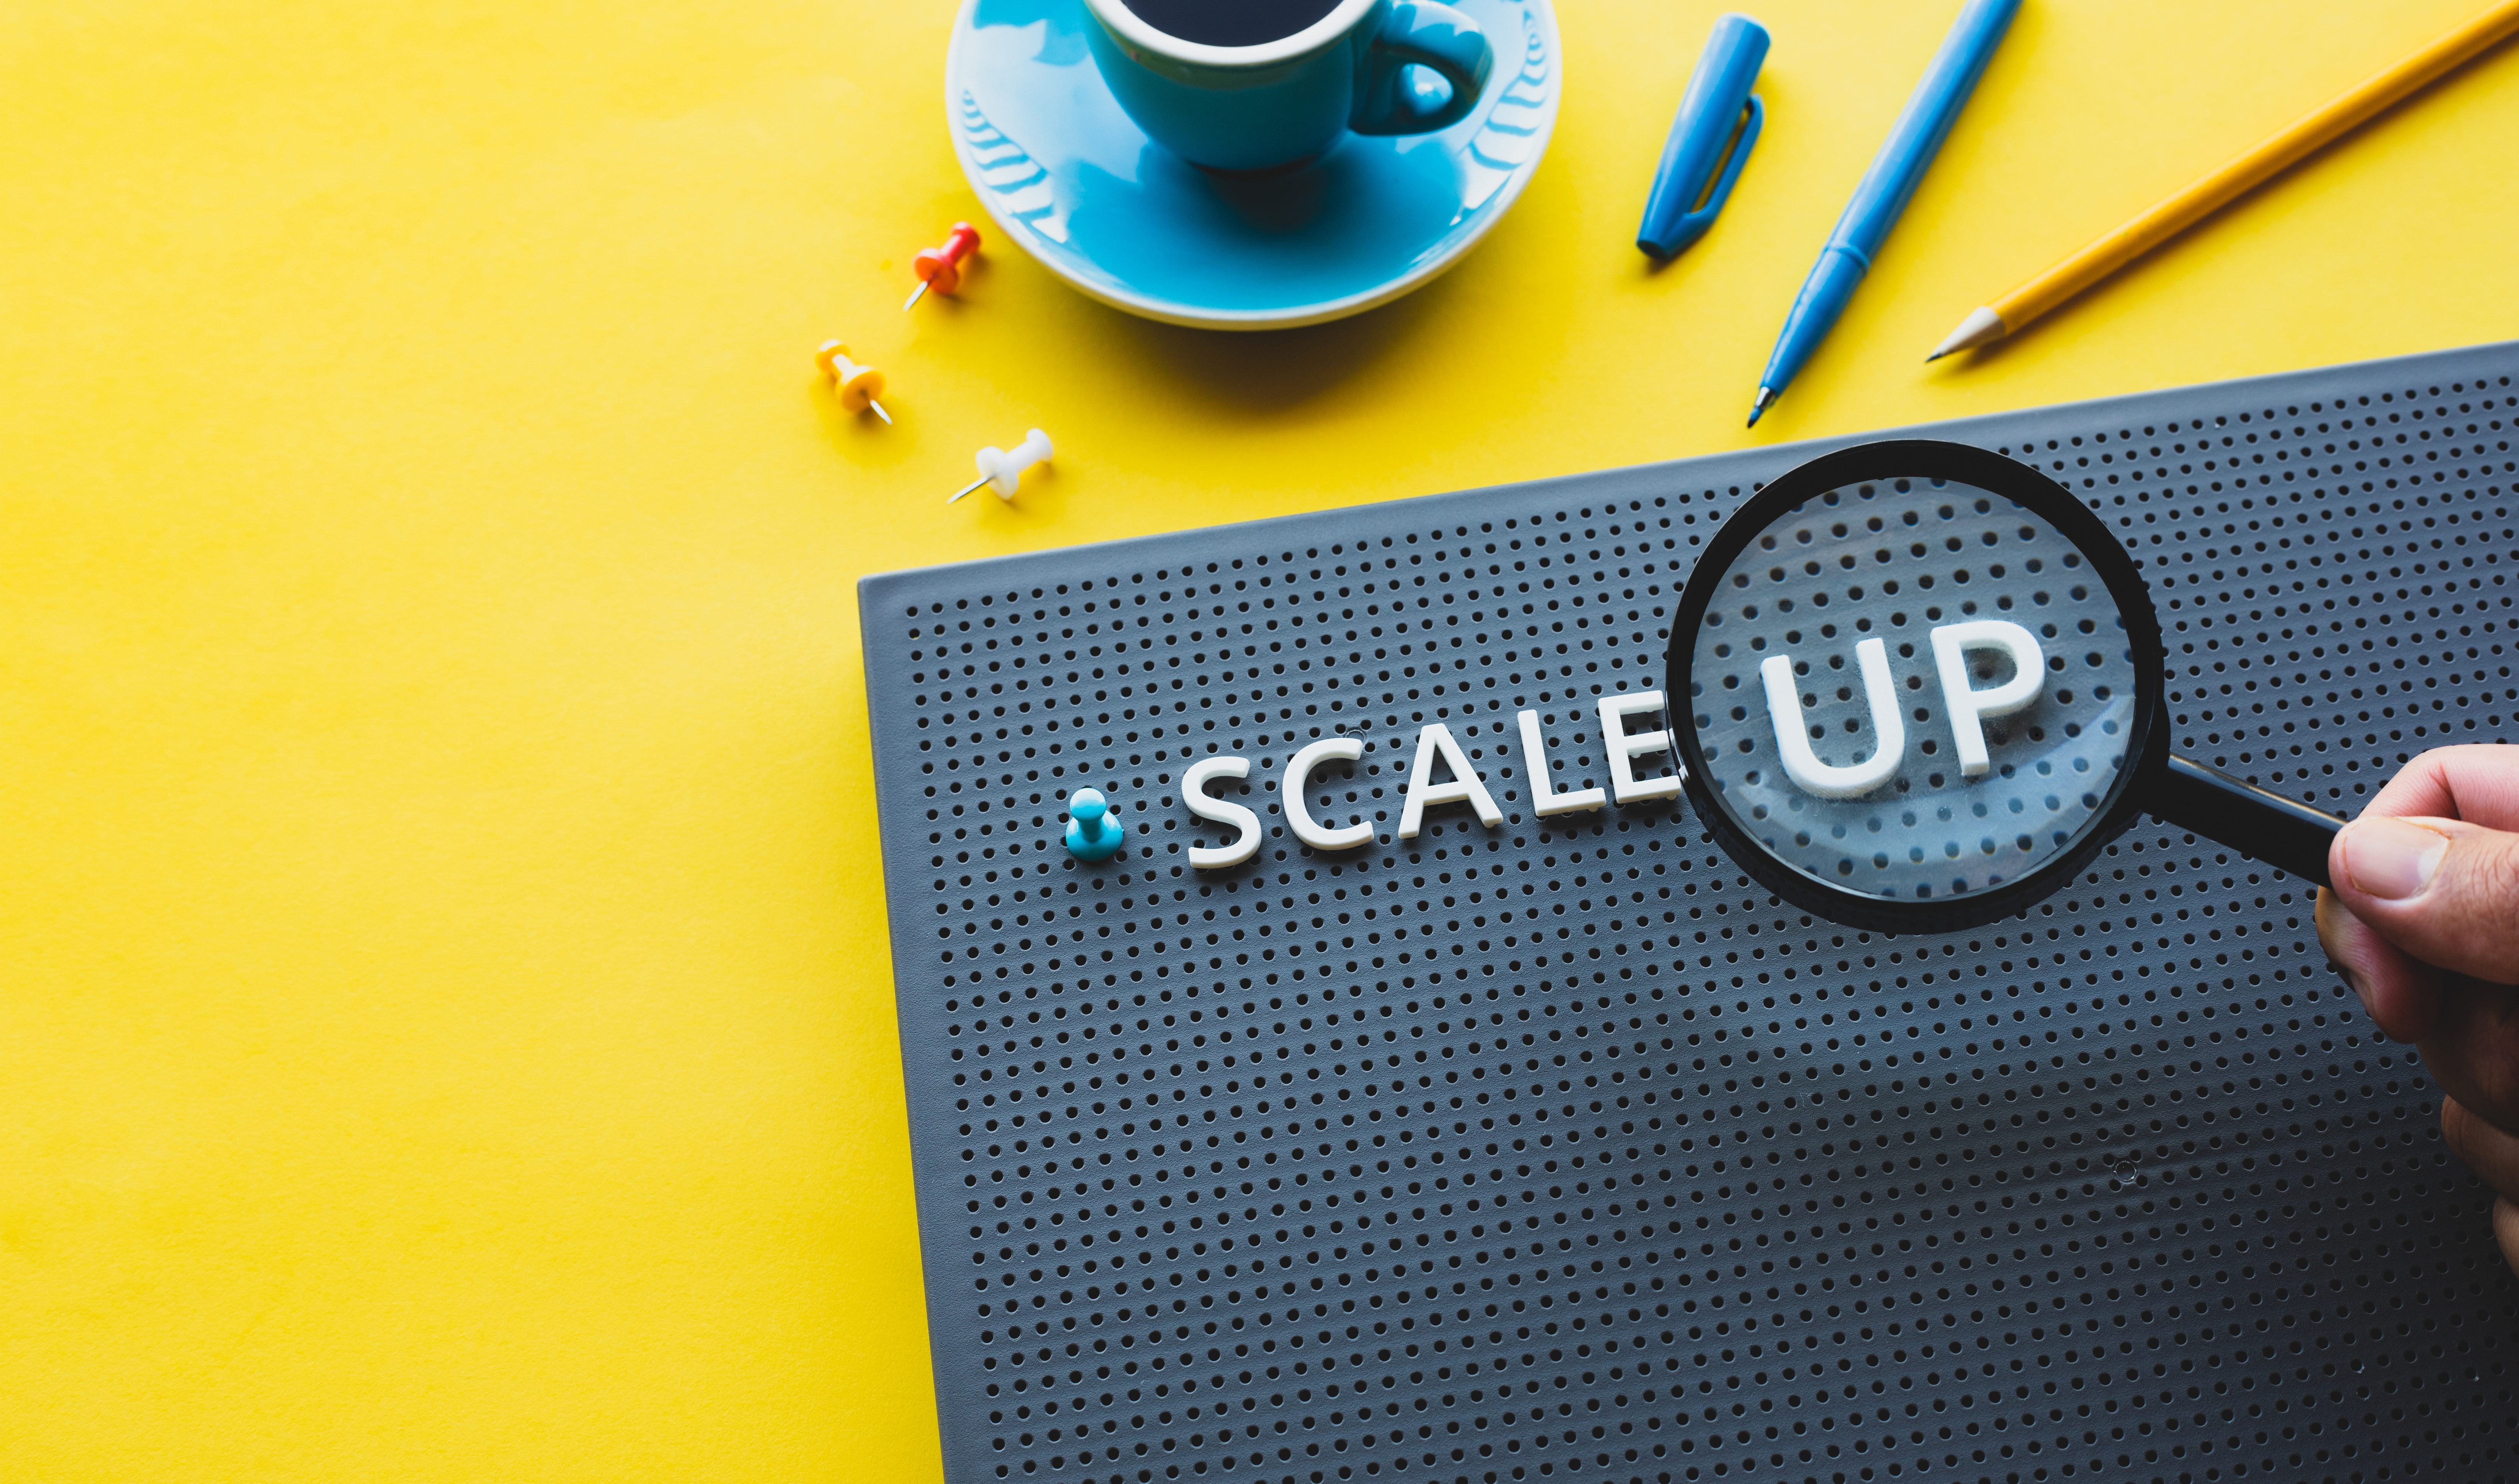 Scale Up board